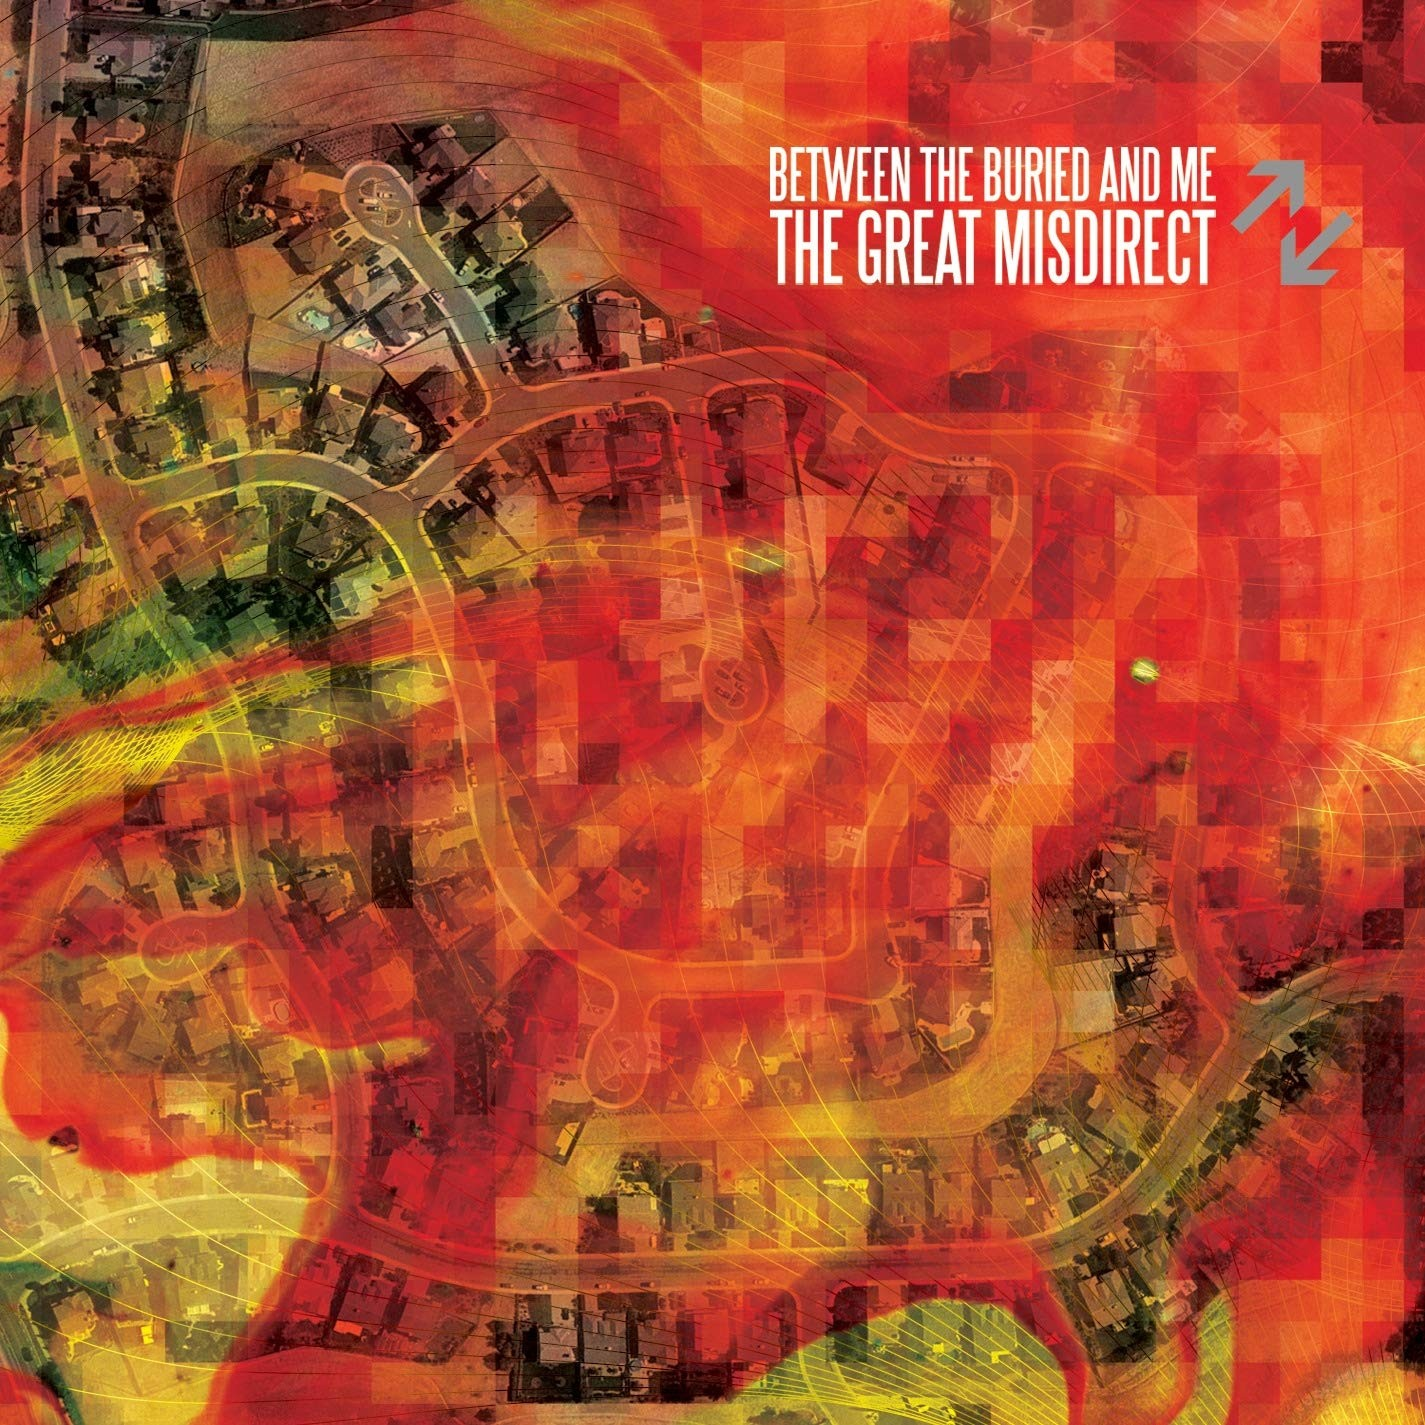 Between The Buried And Me - The Great Misdirect (Remastered)